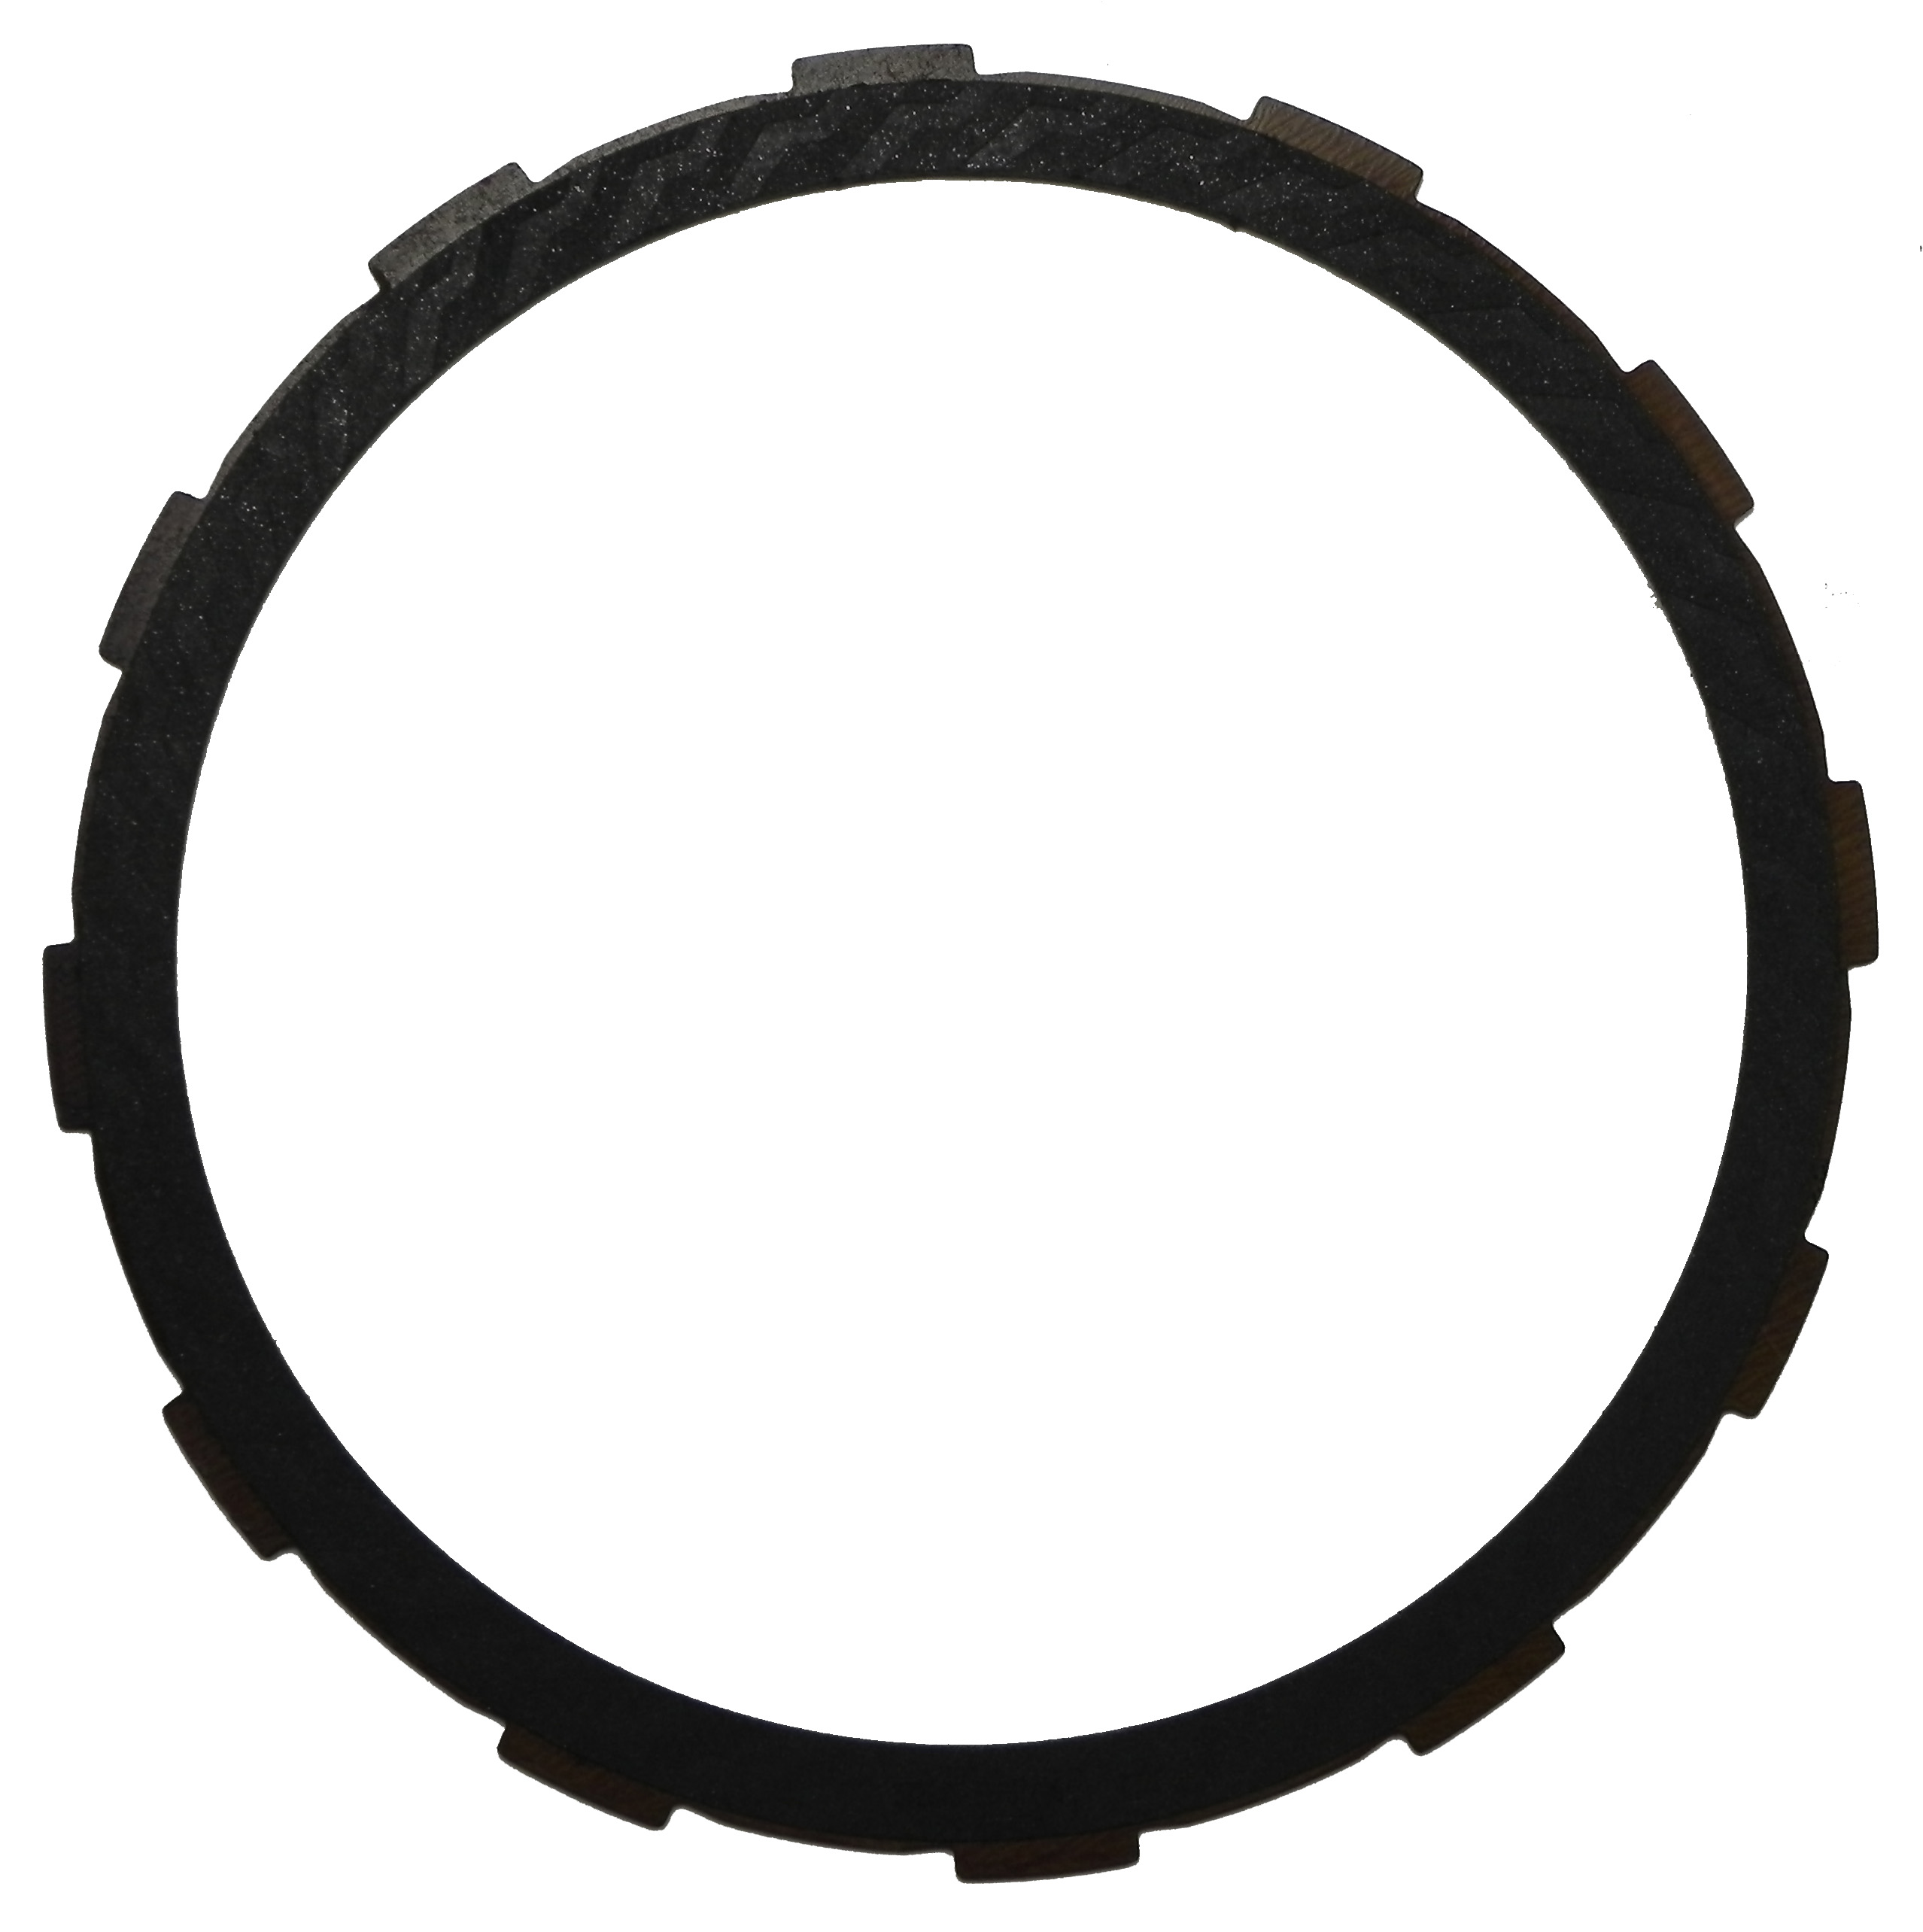 R572645 | 1996-ON Friction Clutch Plate High Energy B1, K1 Single Sided, OD Spline High Energy